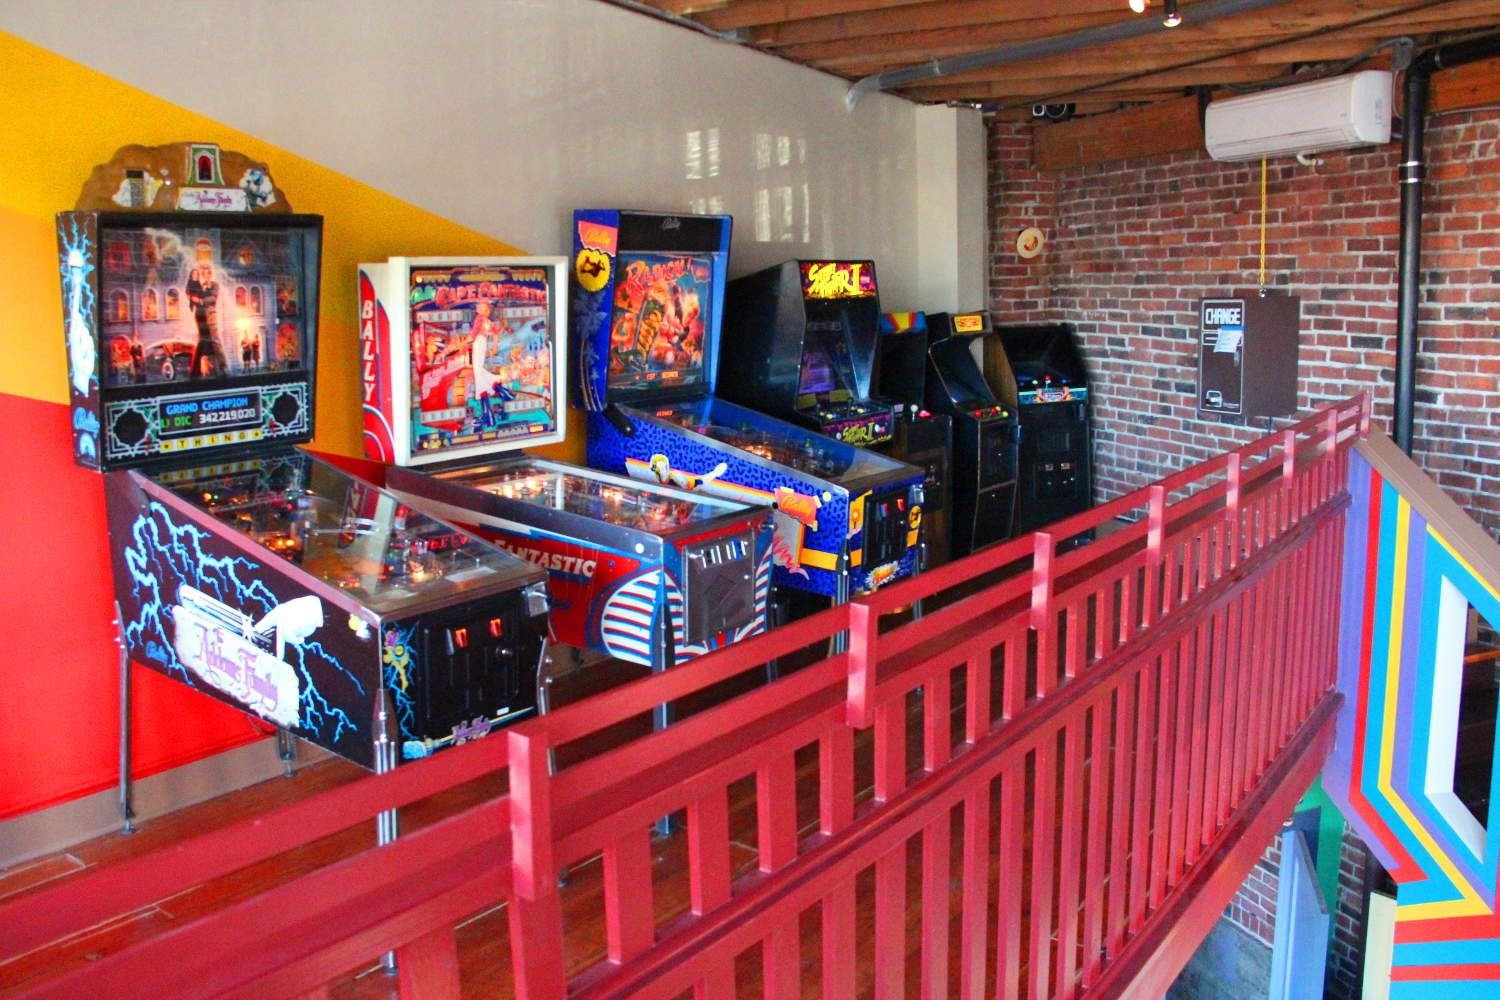 Is it an arcade or a bar? Yes! Arcade, Game room, Pinball